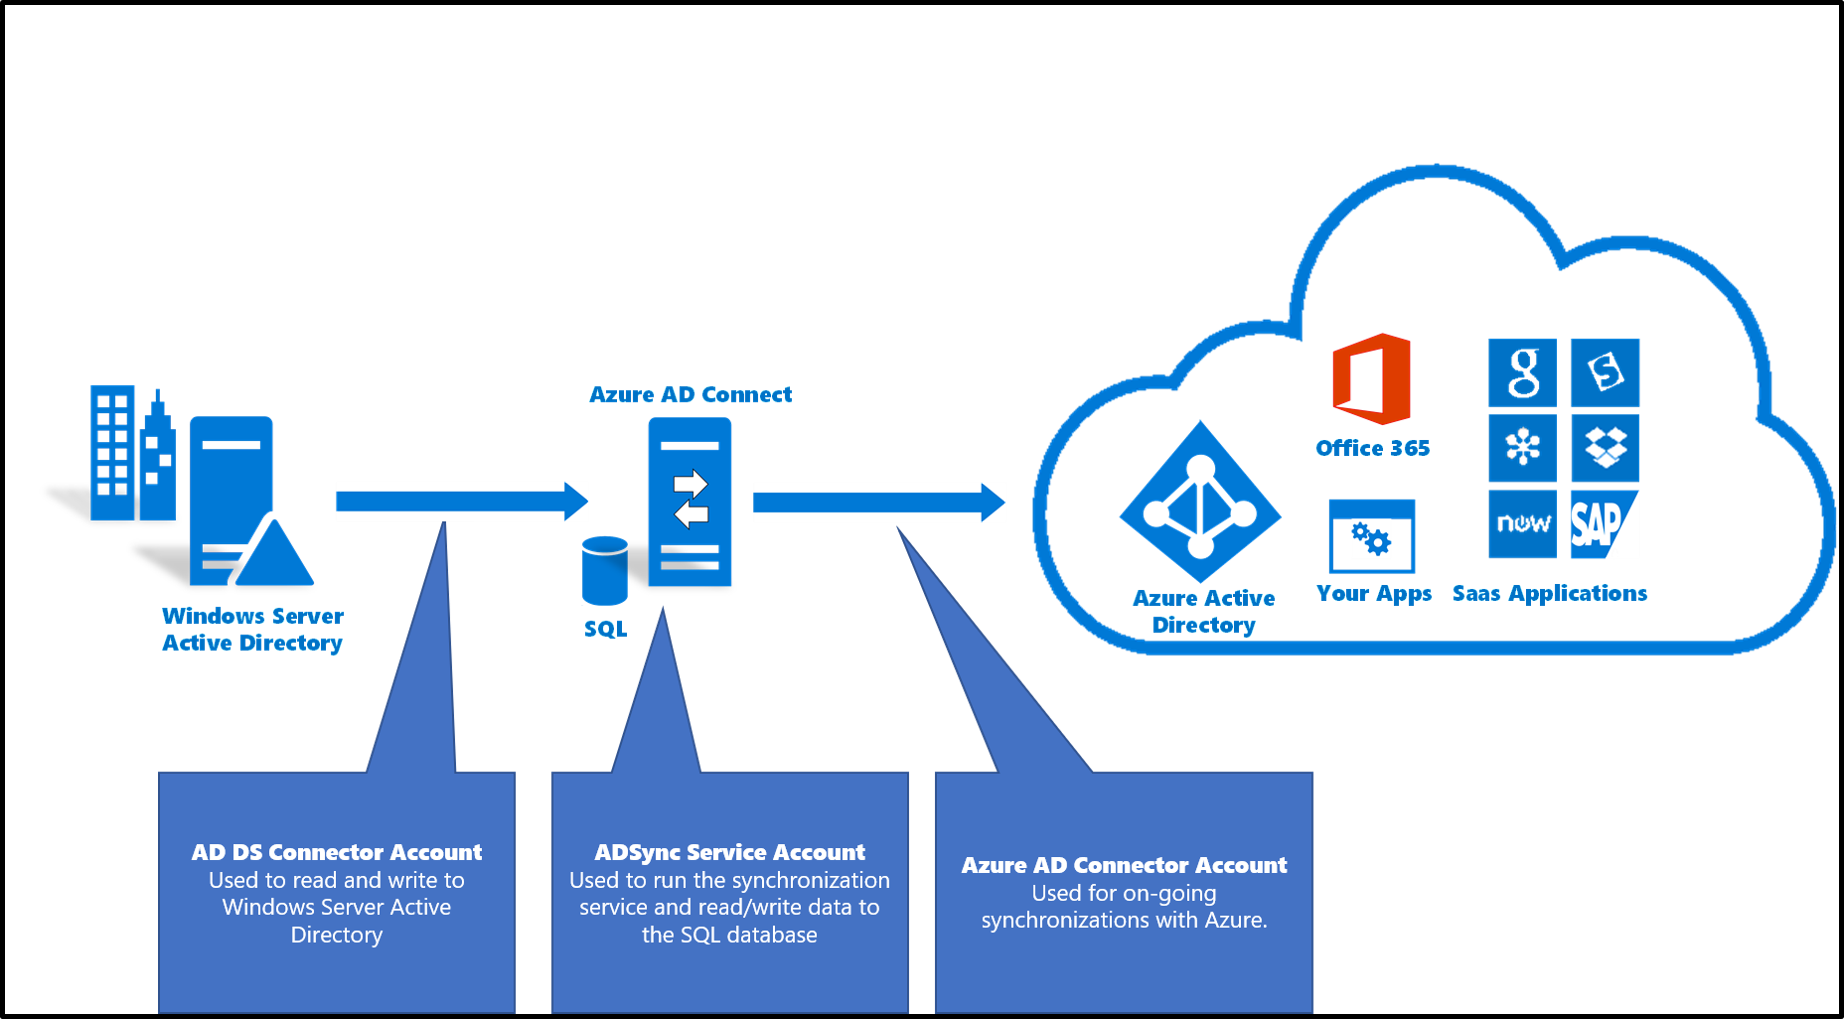 Azure AD Connect: Accounts and permissions | Microsoft Docs